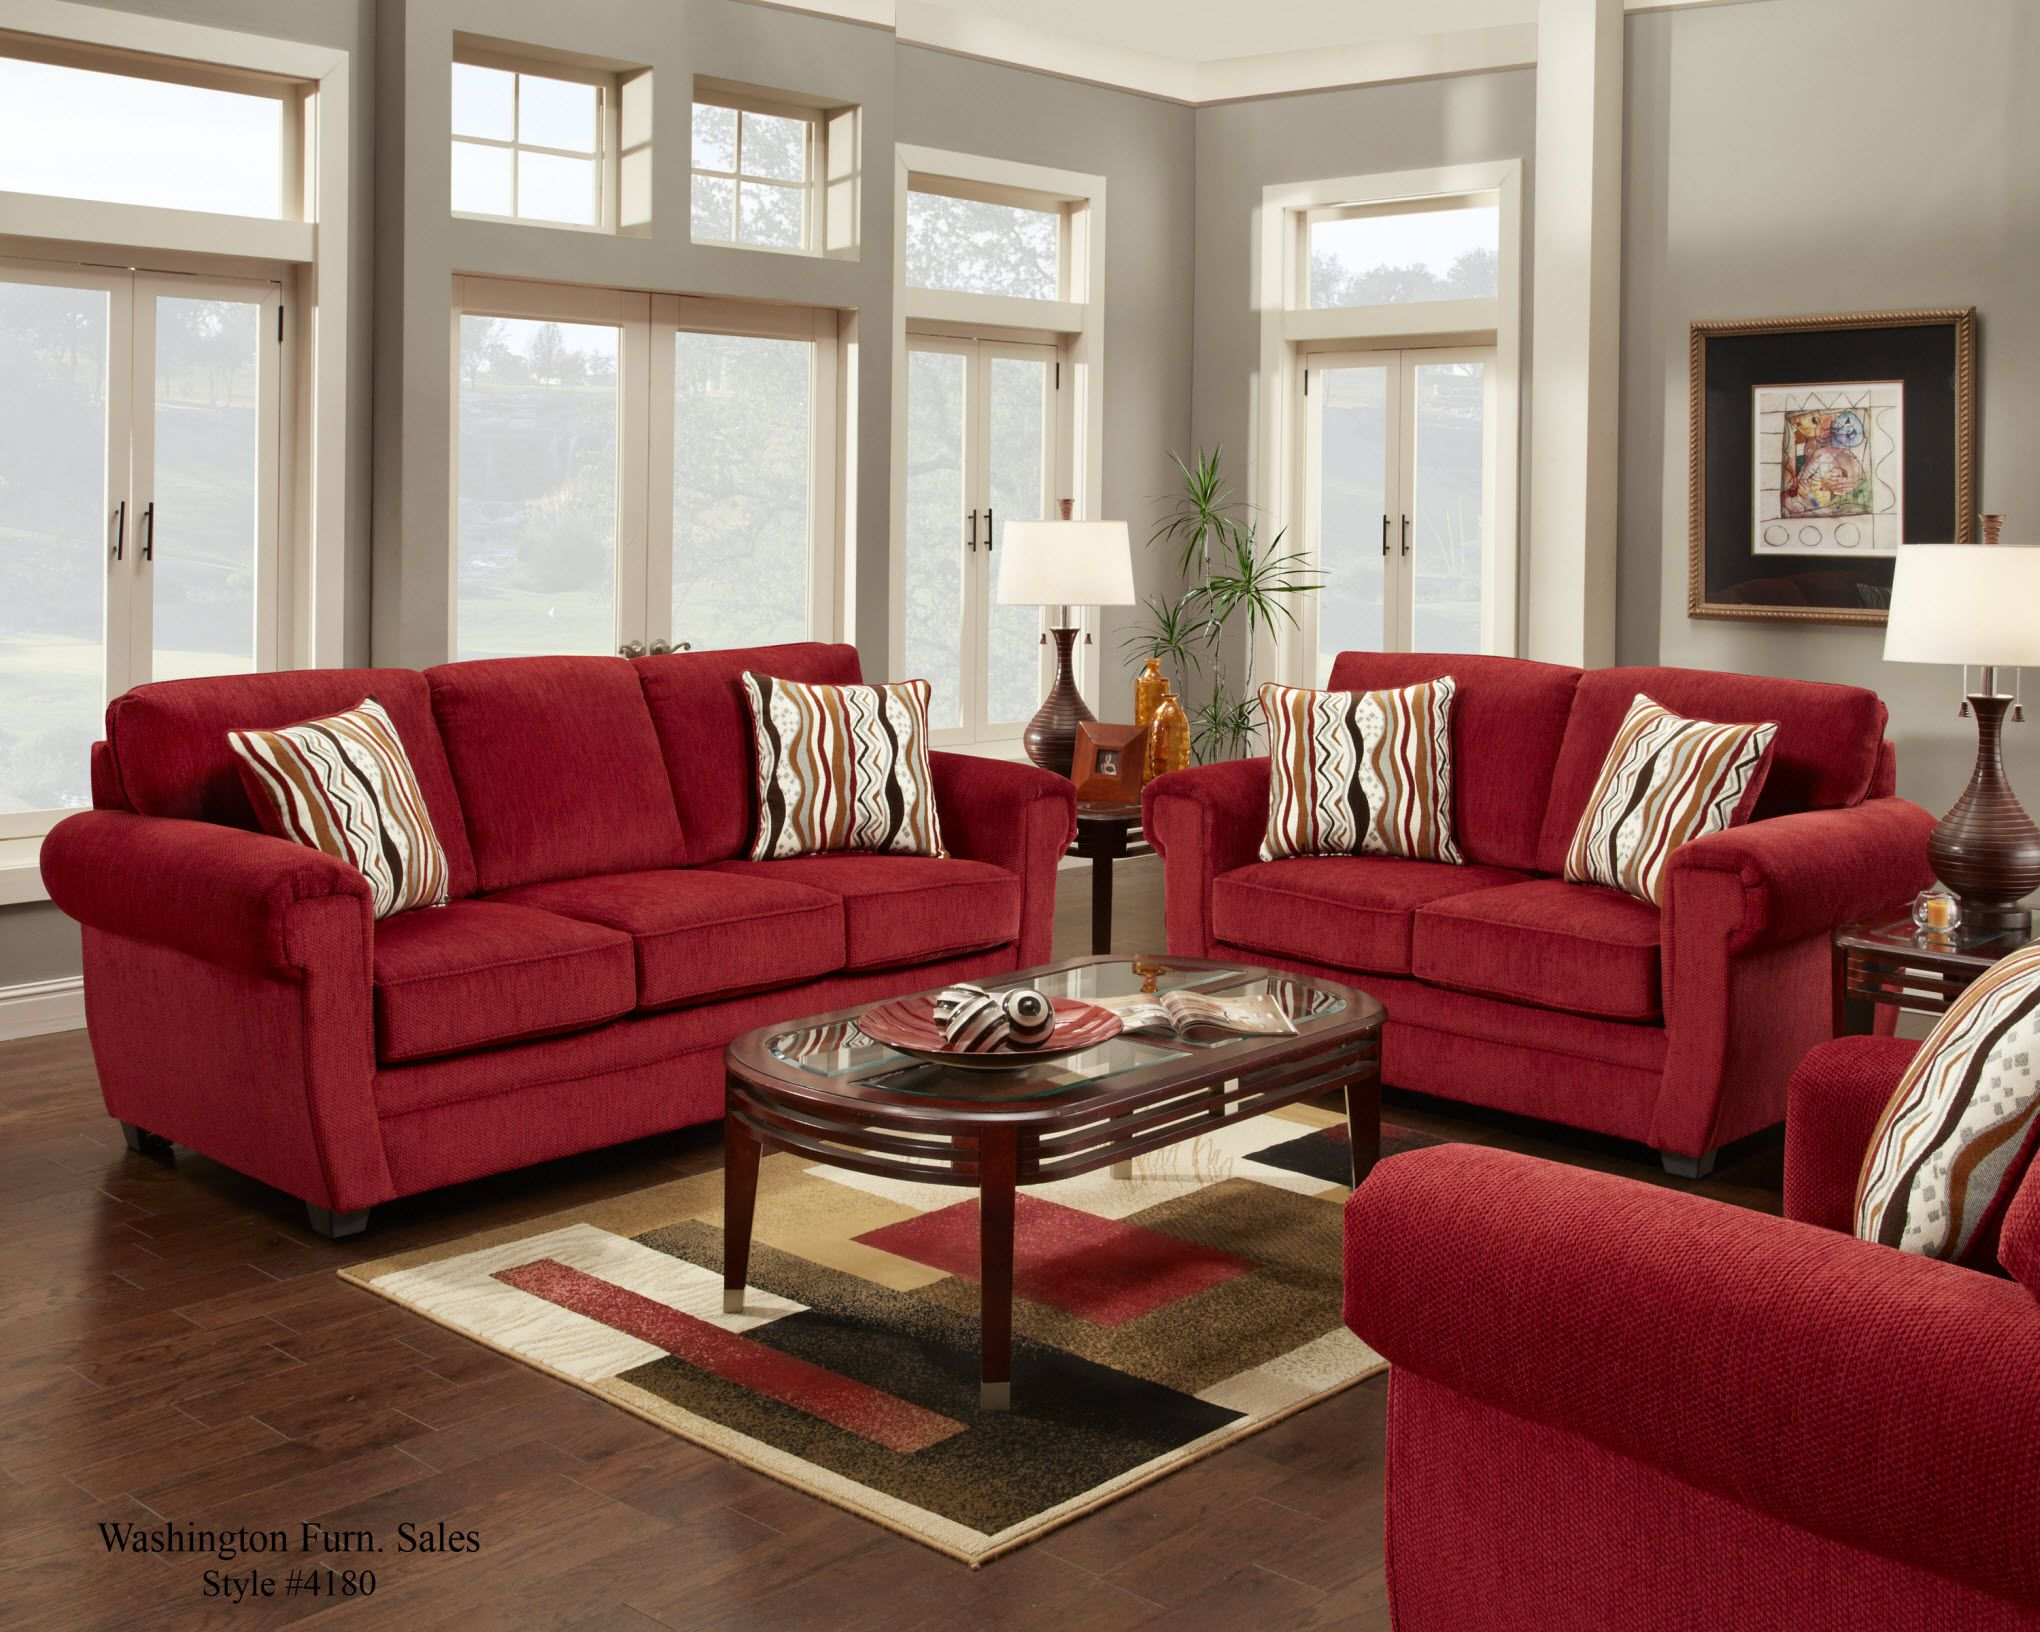 4180 washington samson red sofa and loveseat www for Living room decor sets